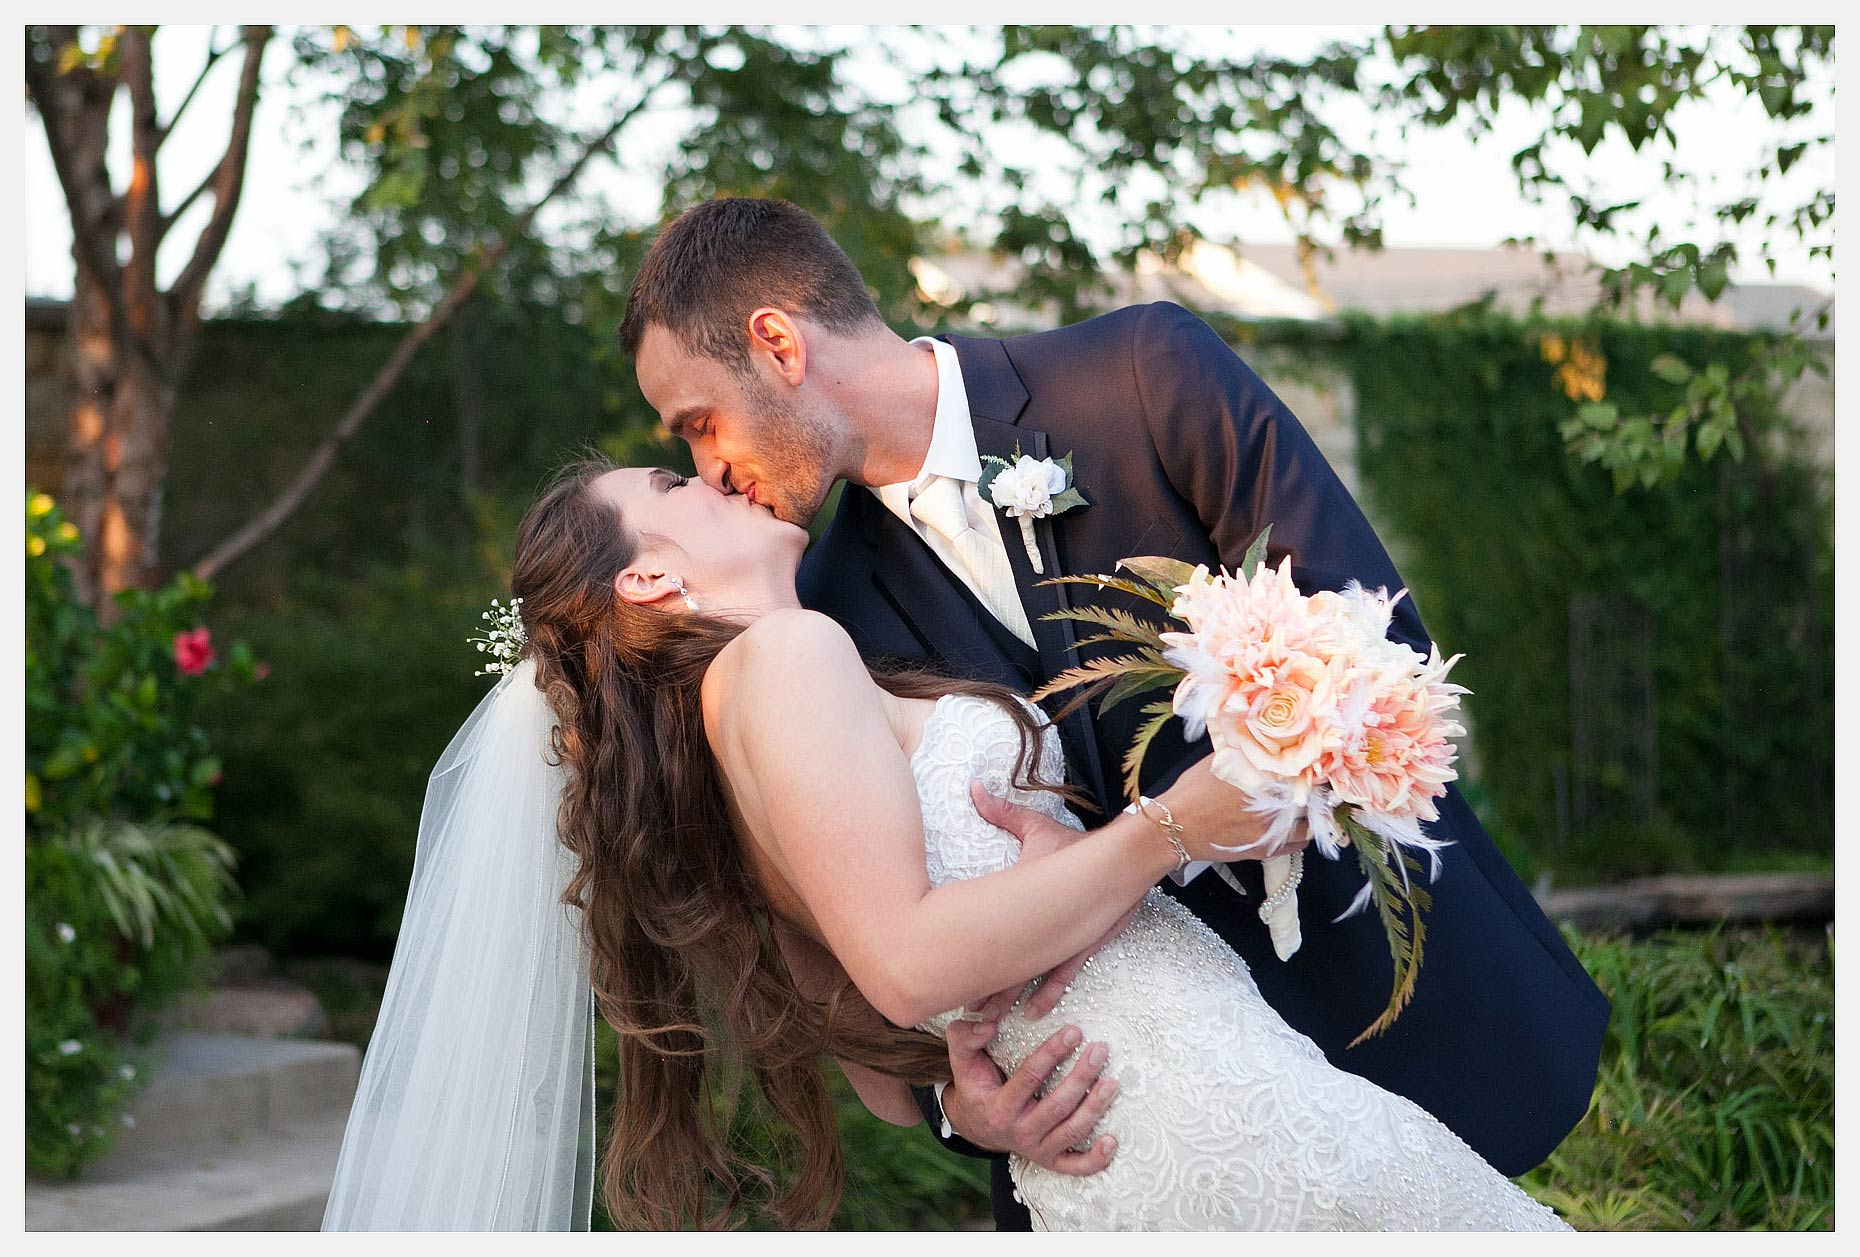 Madison-Carver-Wedding-by-Stephen-Masker-Photography-0089